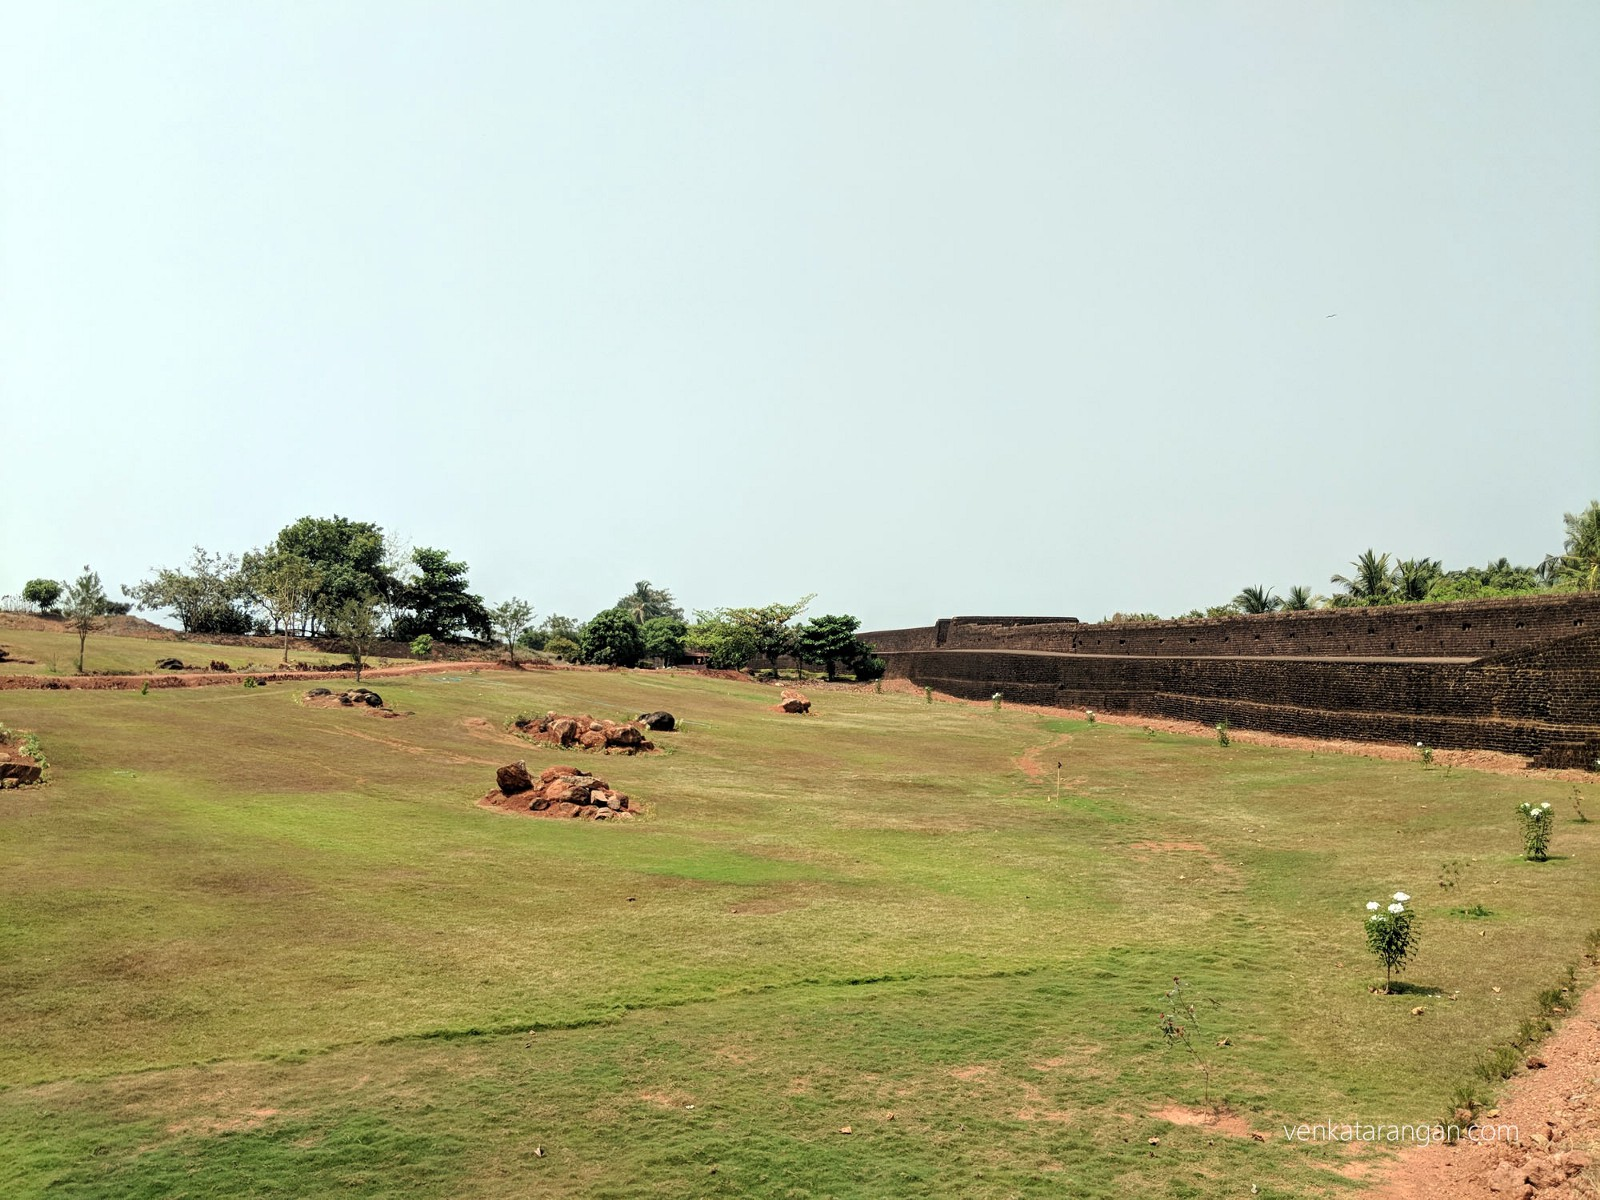 The Fort campus has been maintained well - greenery everywhere